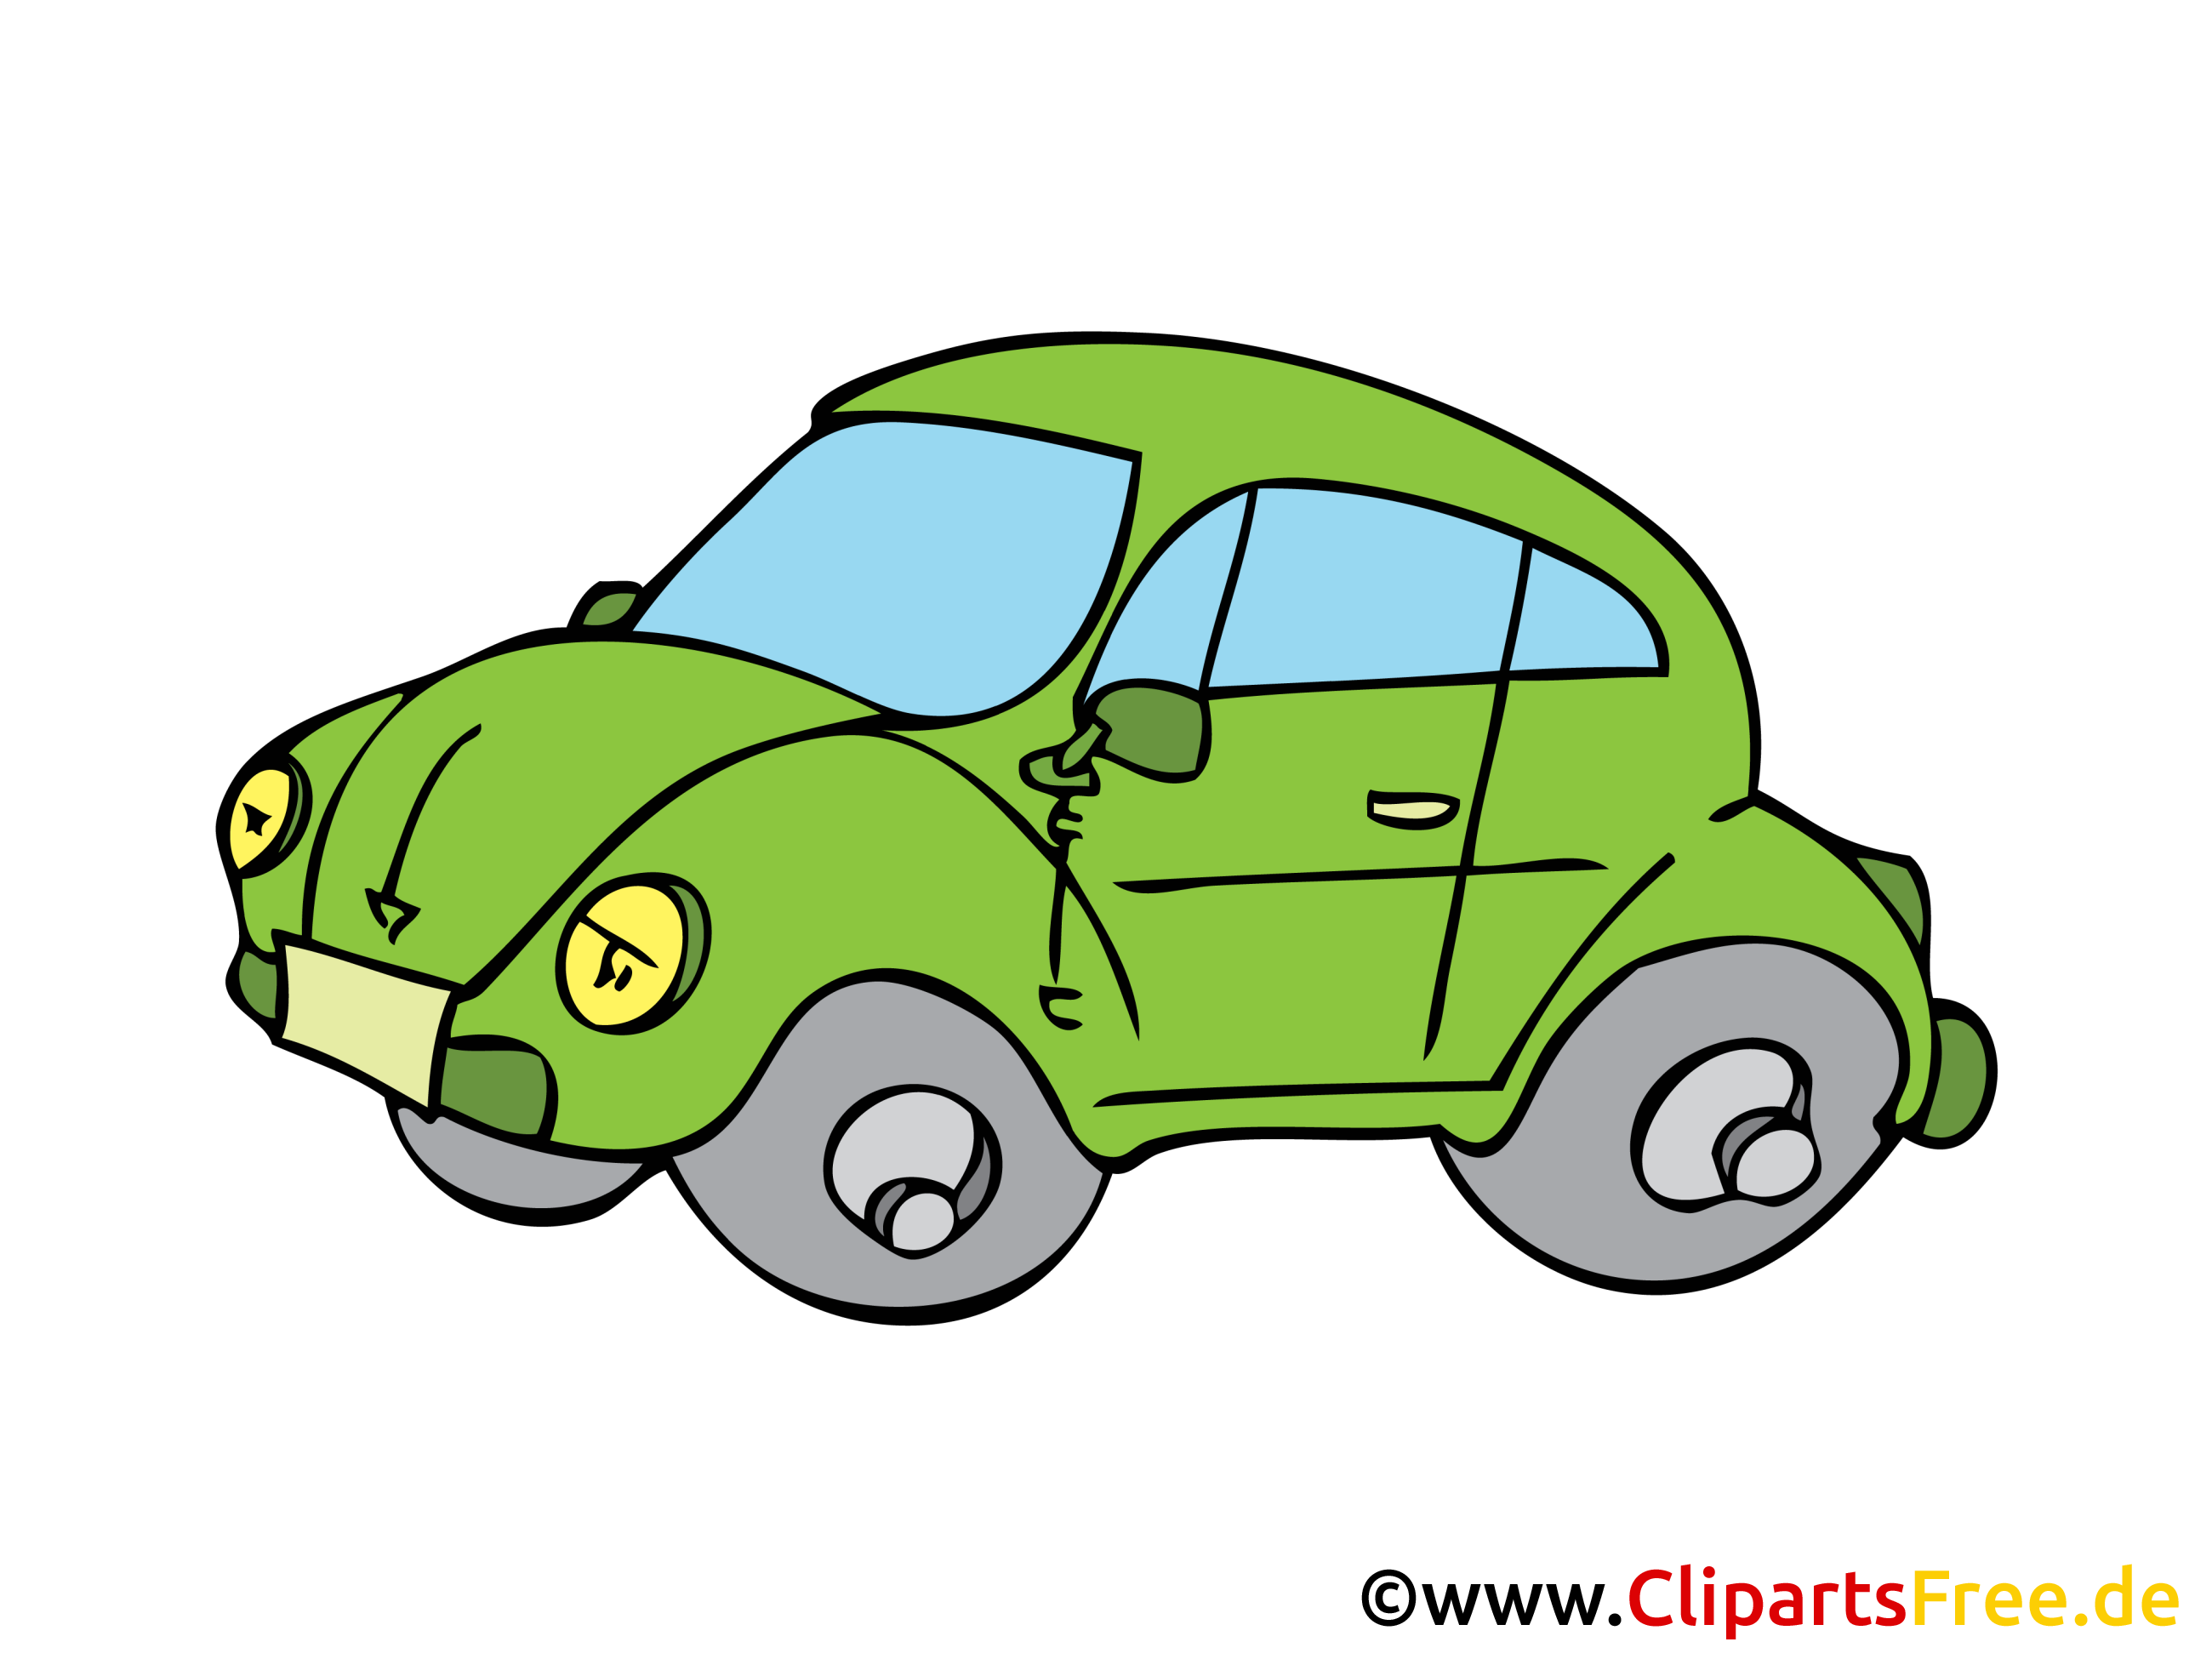 Auto clipart in powerpoint.